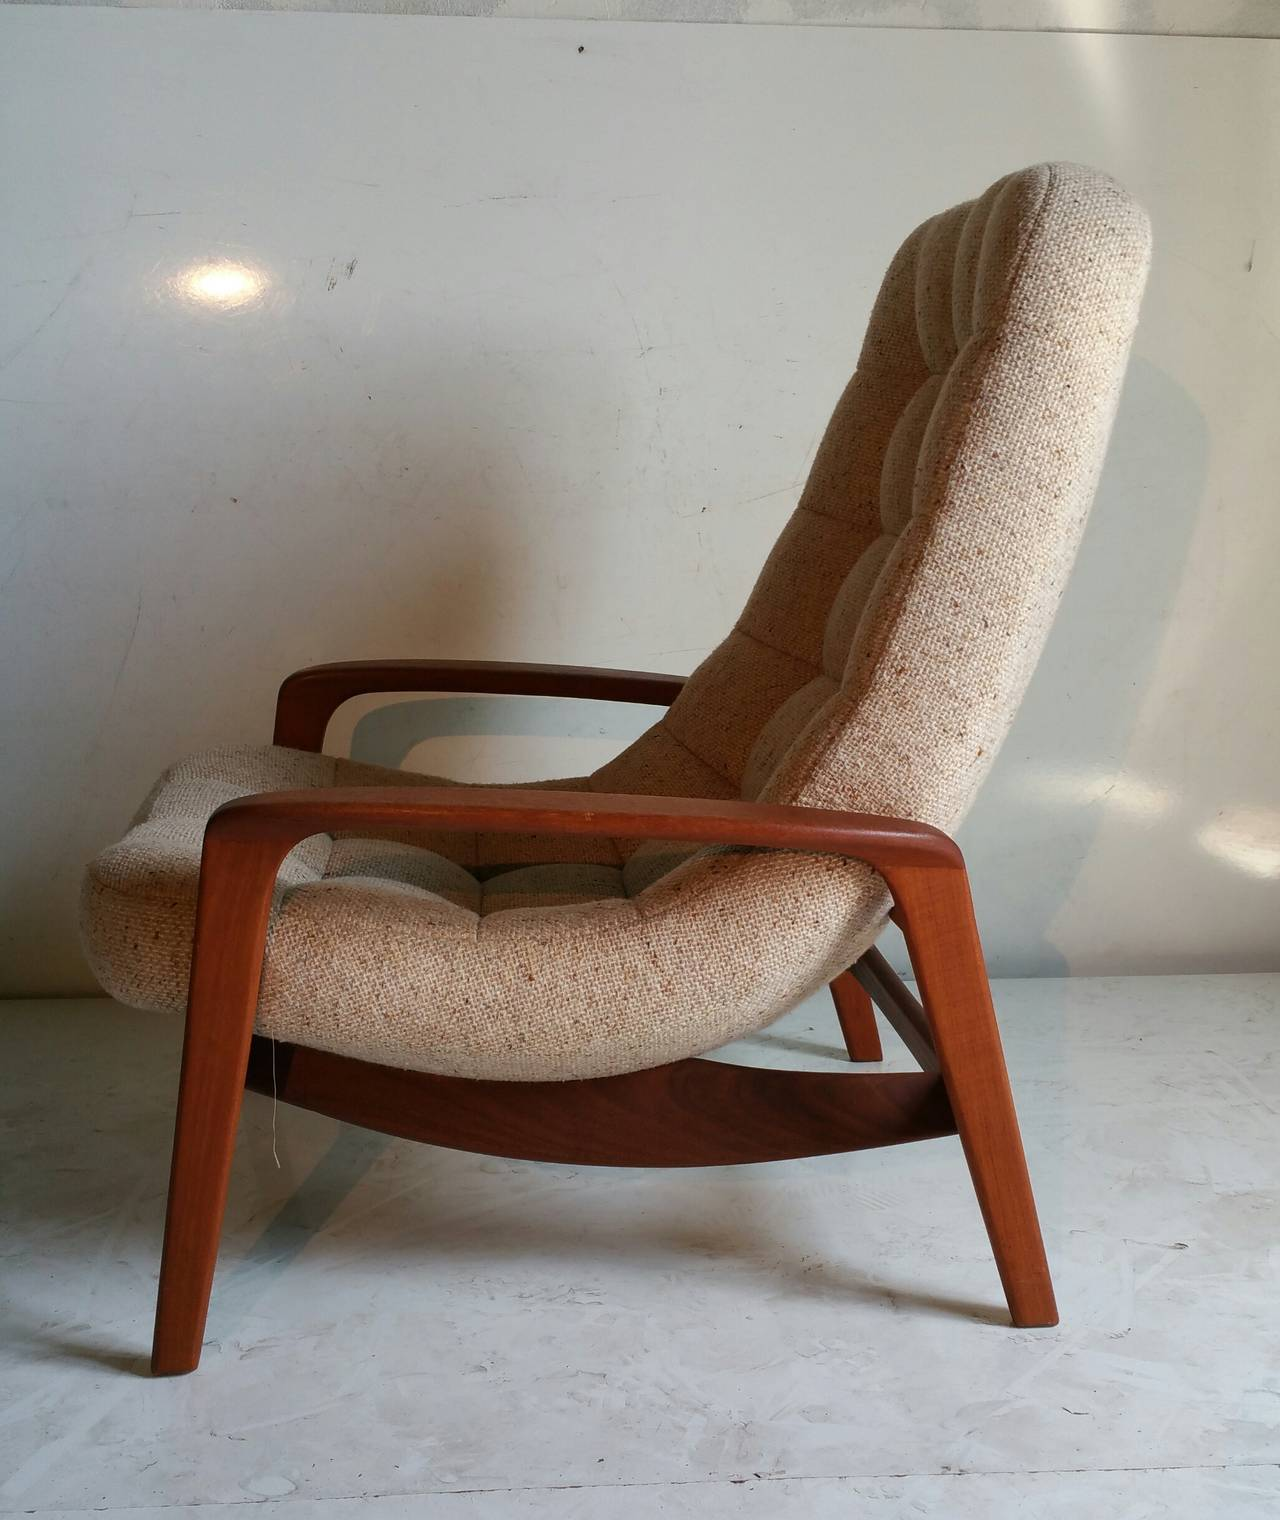 Ordinaire Mid Century Modern Teak Floating Egg Chair By R. Huber U0026 Co.,